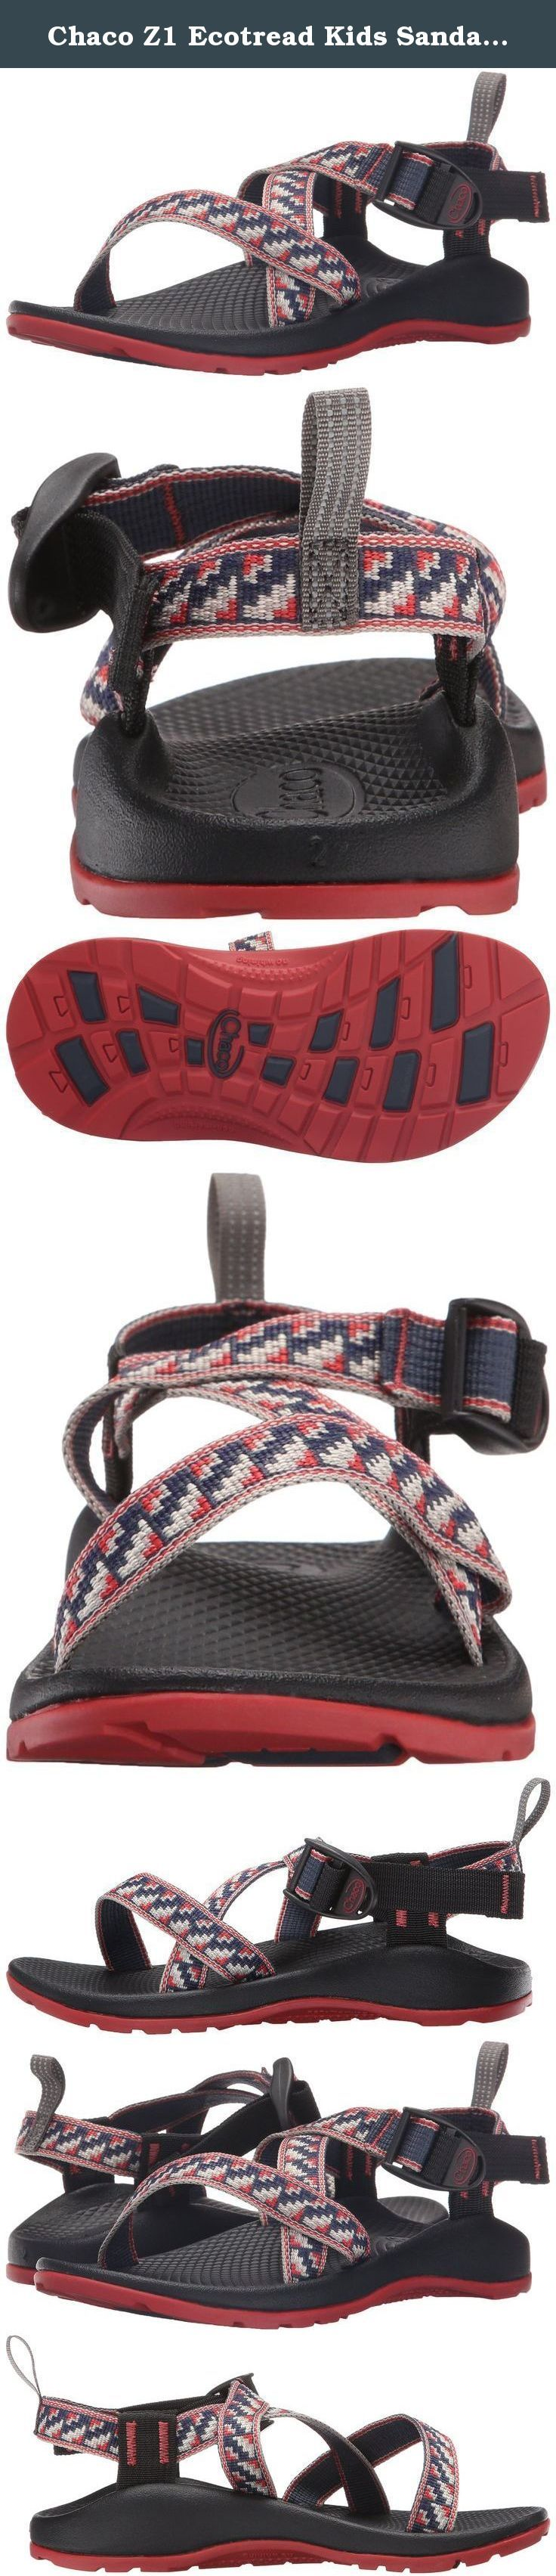 Chaco Z1 Ecotread Kids Sandal (Little Kid/Big Kid). Machine washable and durable, this kid's version of our classic z/1 can handle anything your kids can put them through. Mud pies and capture the flag have met their match. Our luvseat™ platform promotes healthy body alignment, while custom adjusted straps allow for easy on and off.